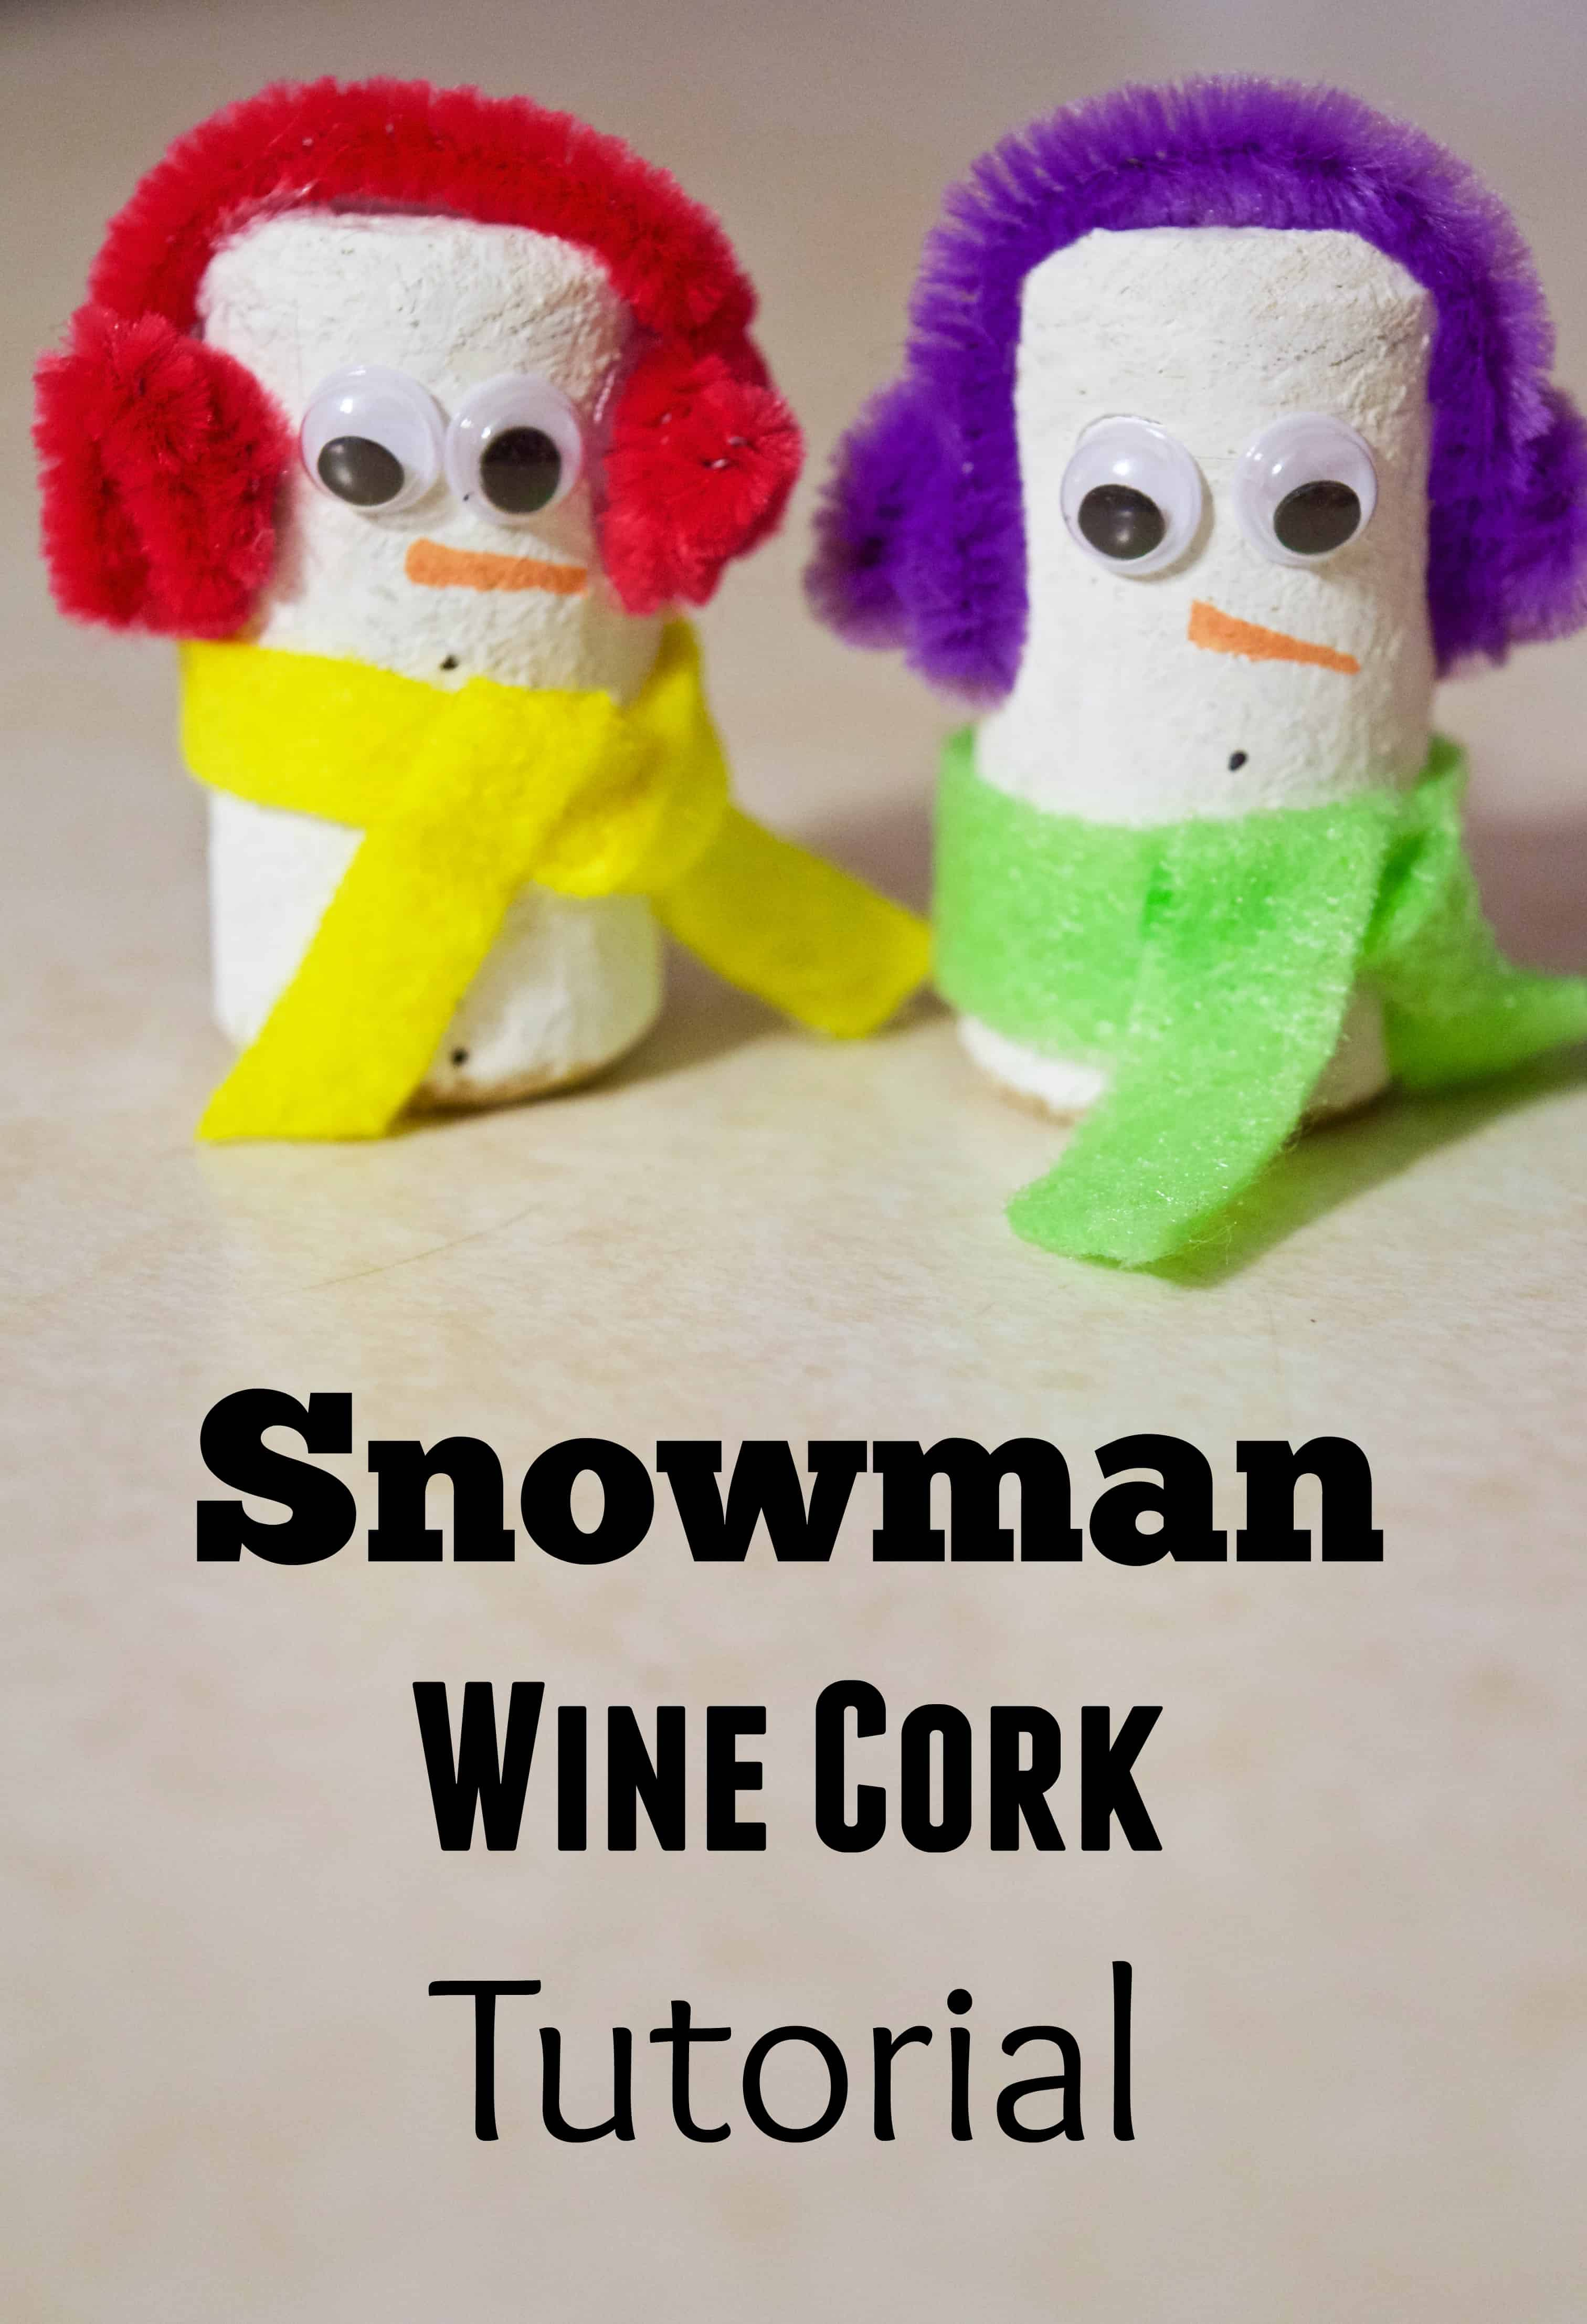 Snowman Wine Cork Winter Craft Tutorial